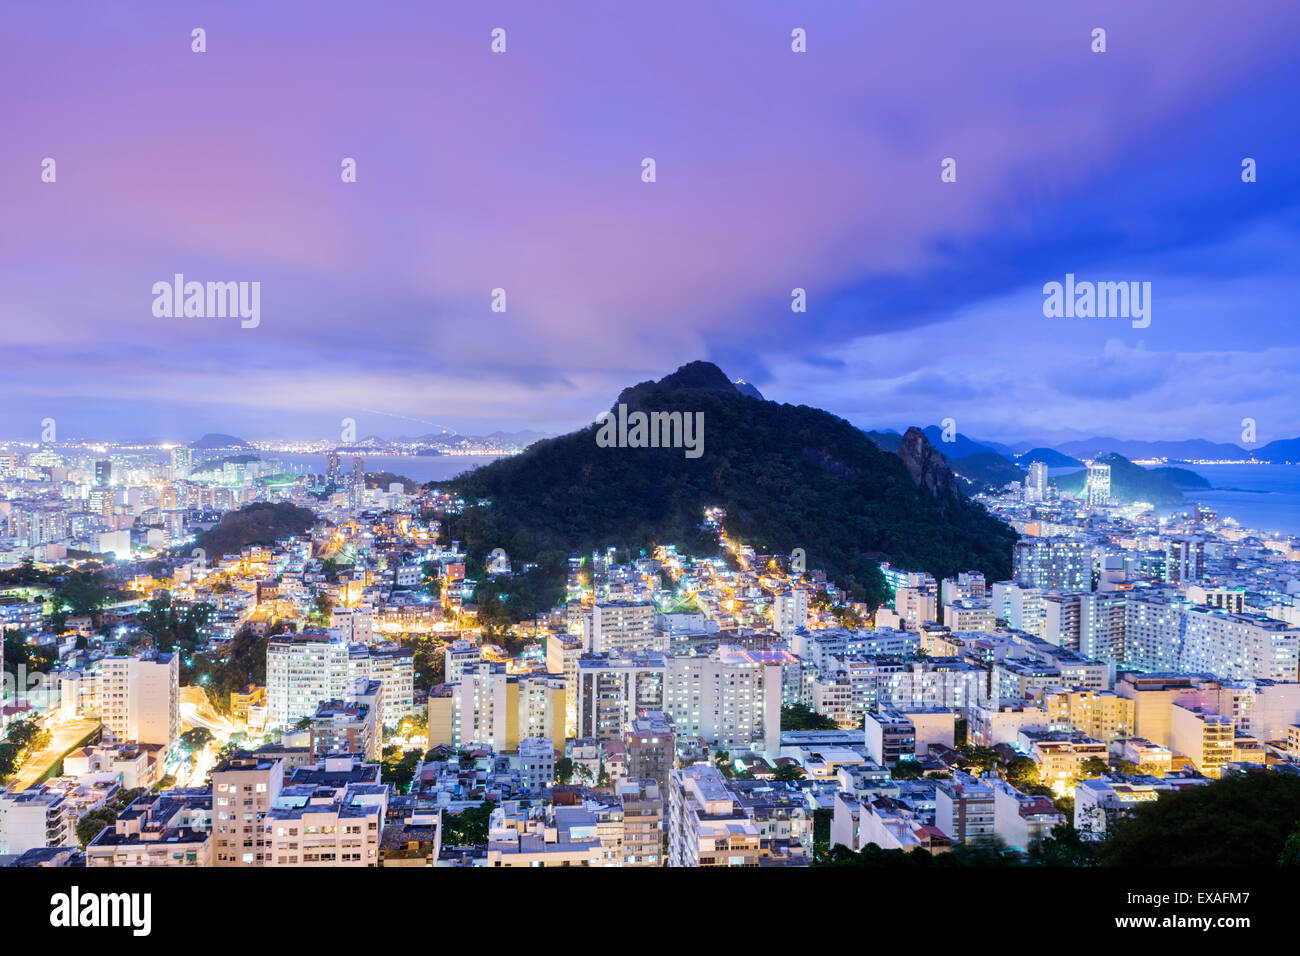 Twilight, illuminated view of Copacabana, the Morro de Sao Joao, Botafogo and the Atlantic coast of Rio, Rio de - Stock Image